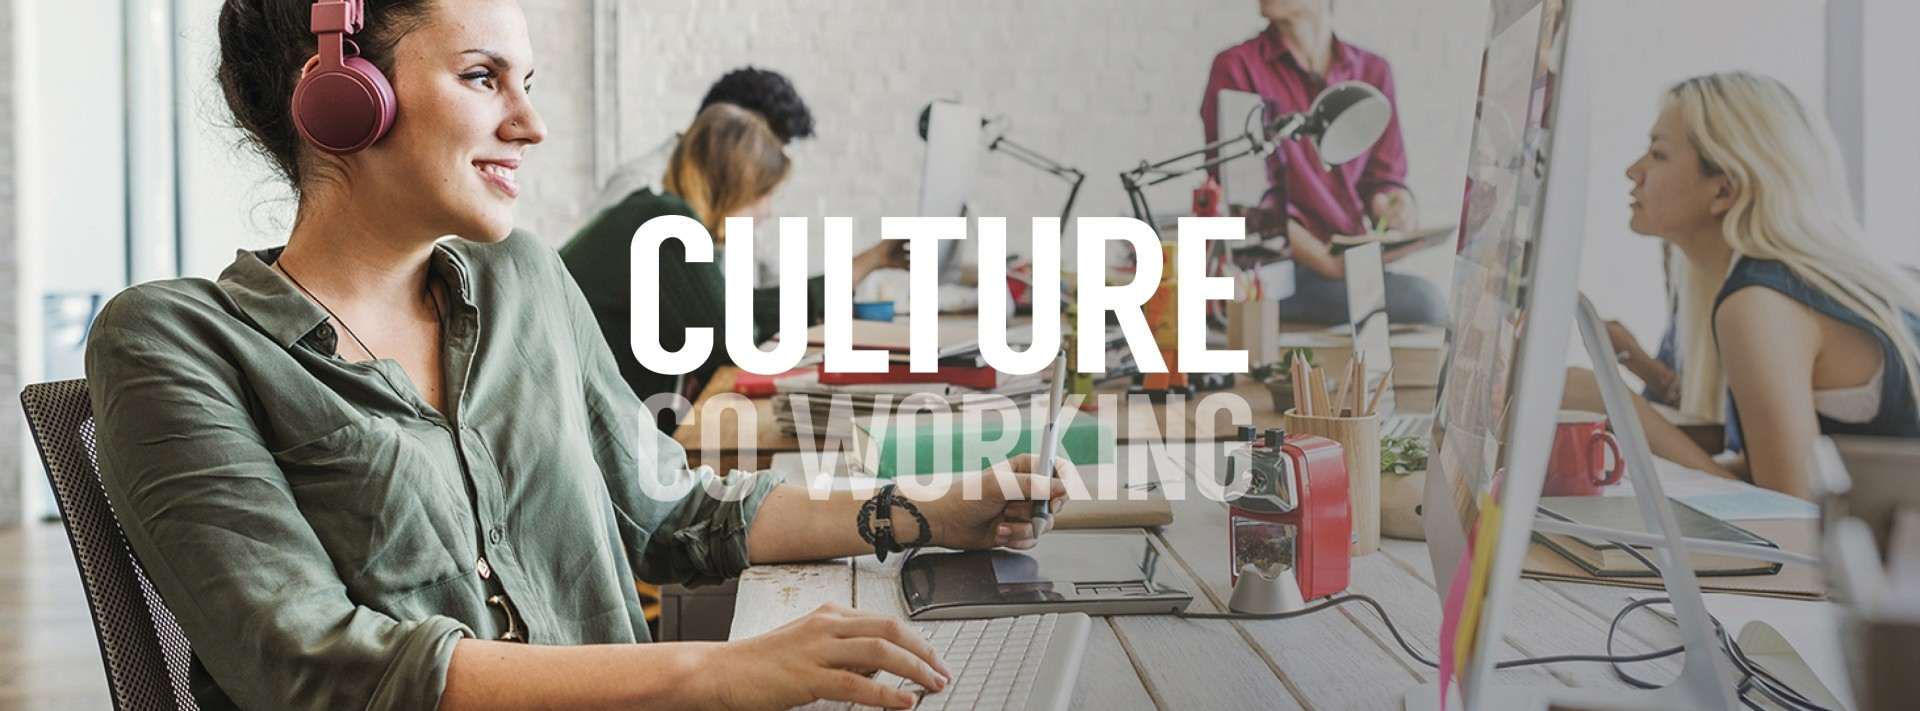 Culture Co-Working